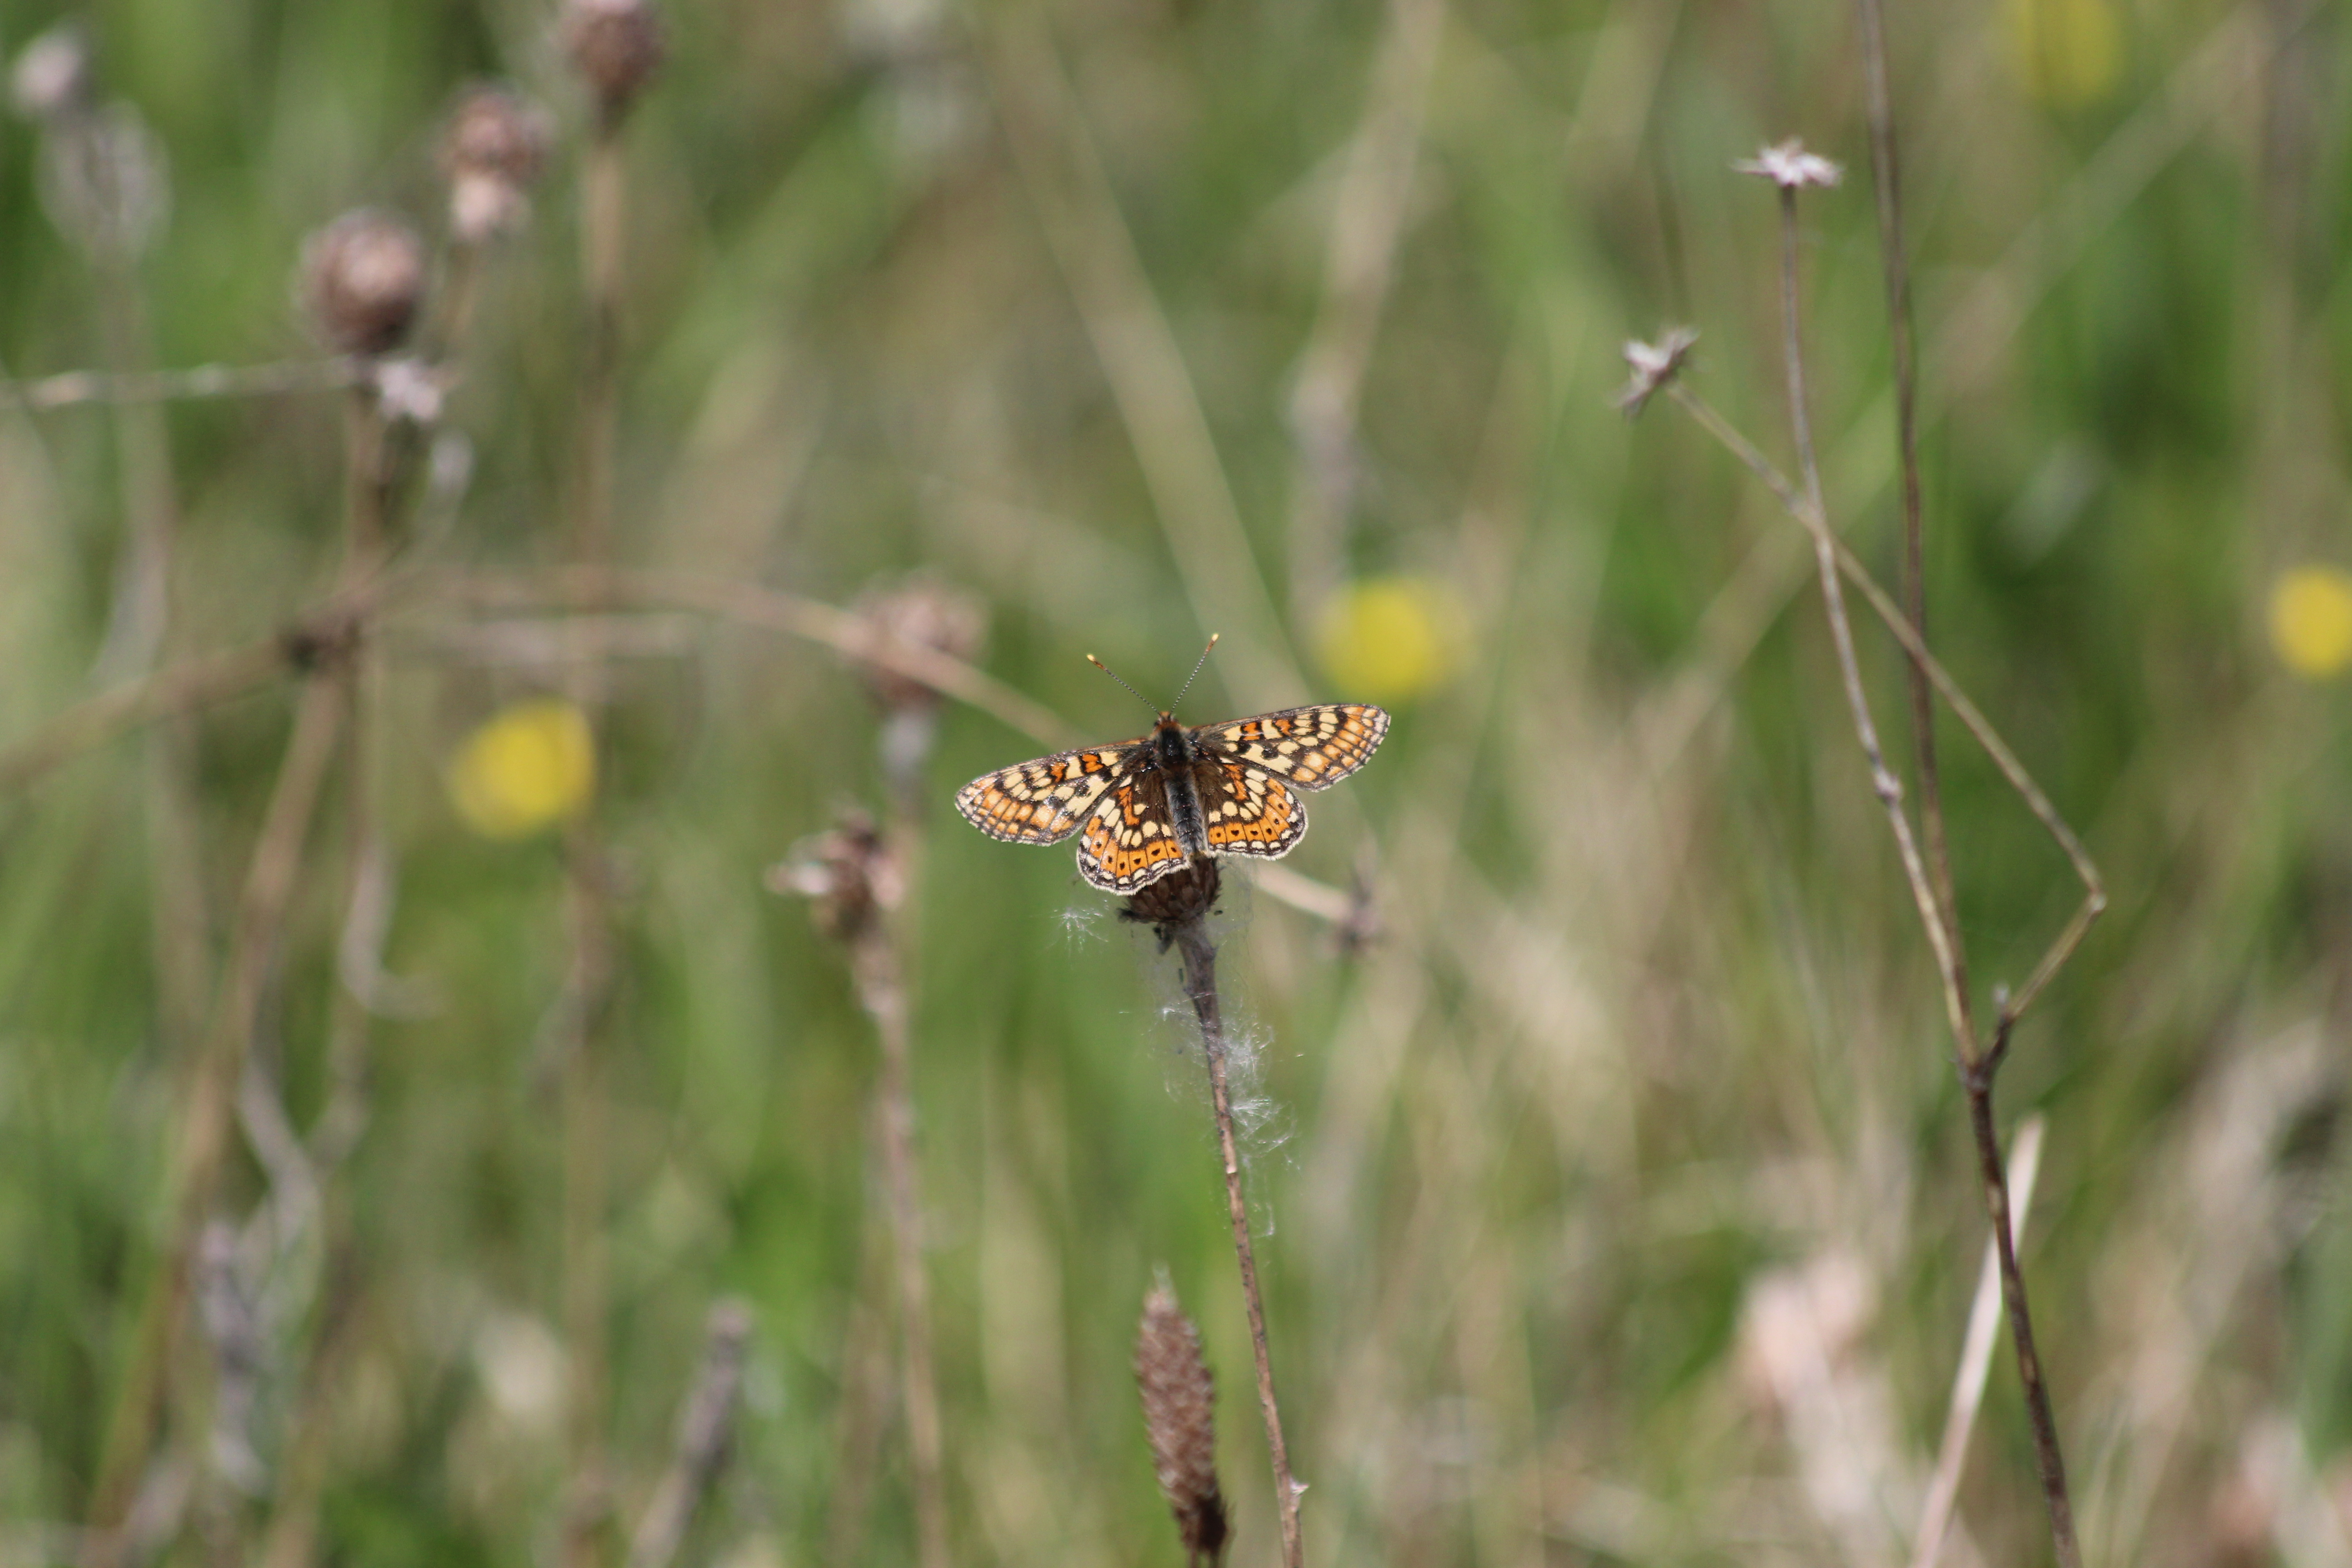 The rare Marsh Fritillary Butterfly was recorded for the first time on an irish bog for 20 years